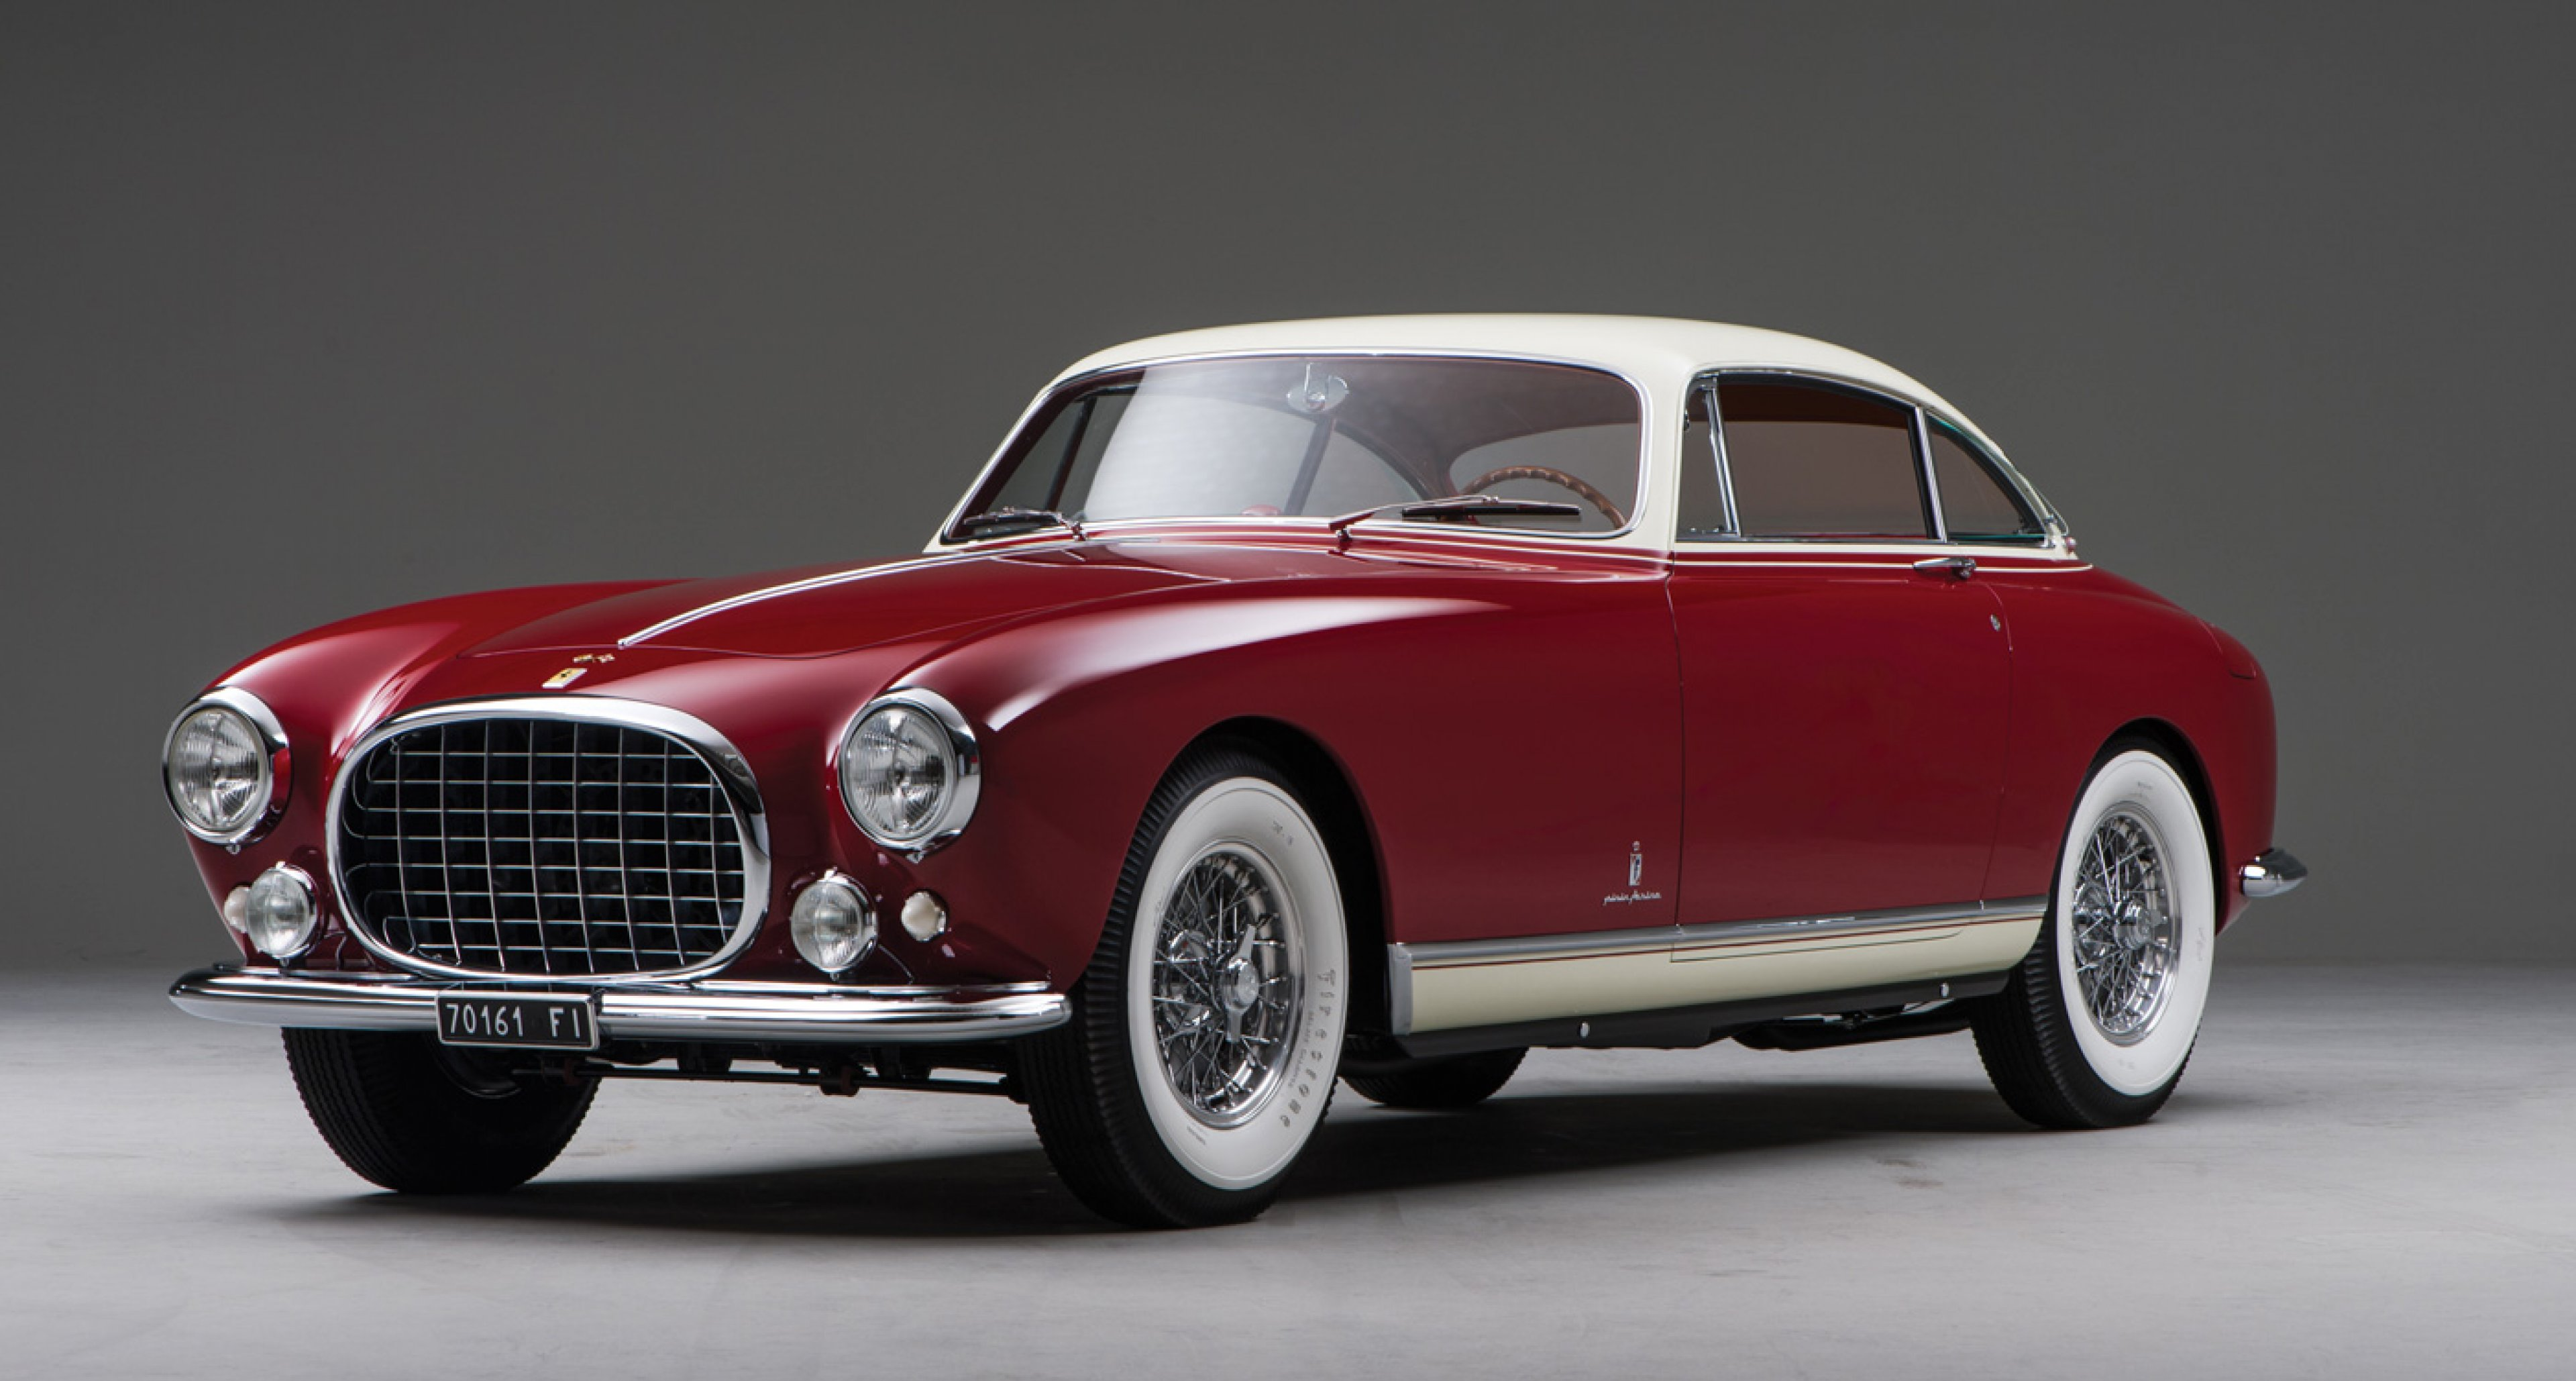 1953 Ferrari 250 Europa by Pinin Farina to be auctioned at RM's Monterey auction 2014 (Estimate: $1,900,000–$2,400,000)